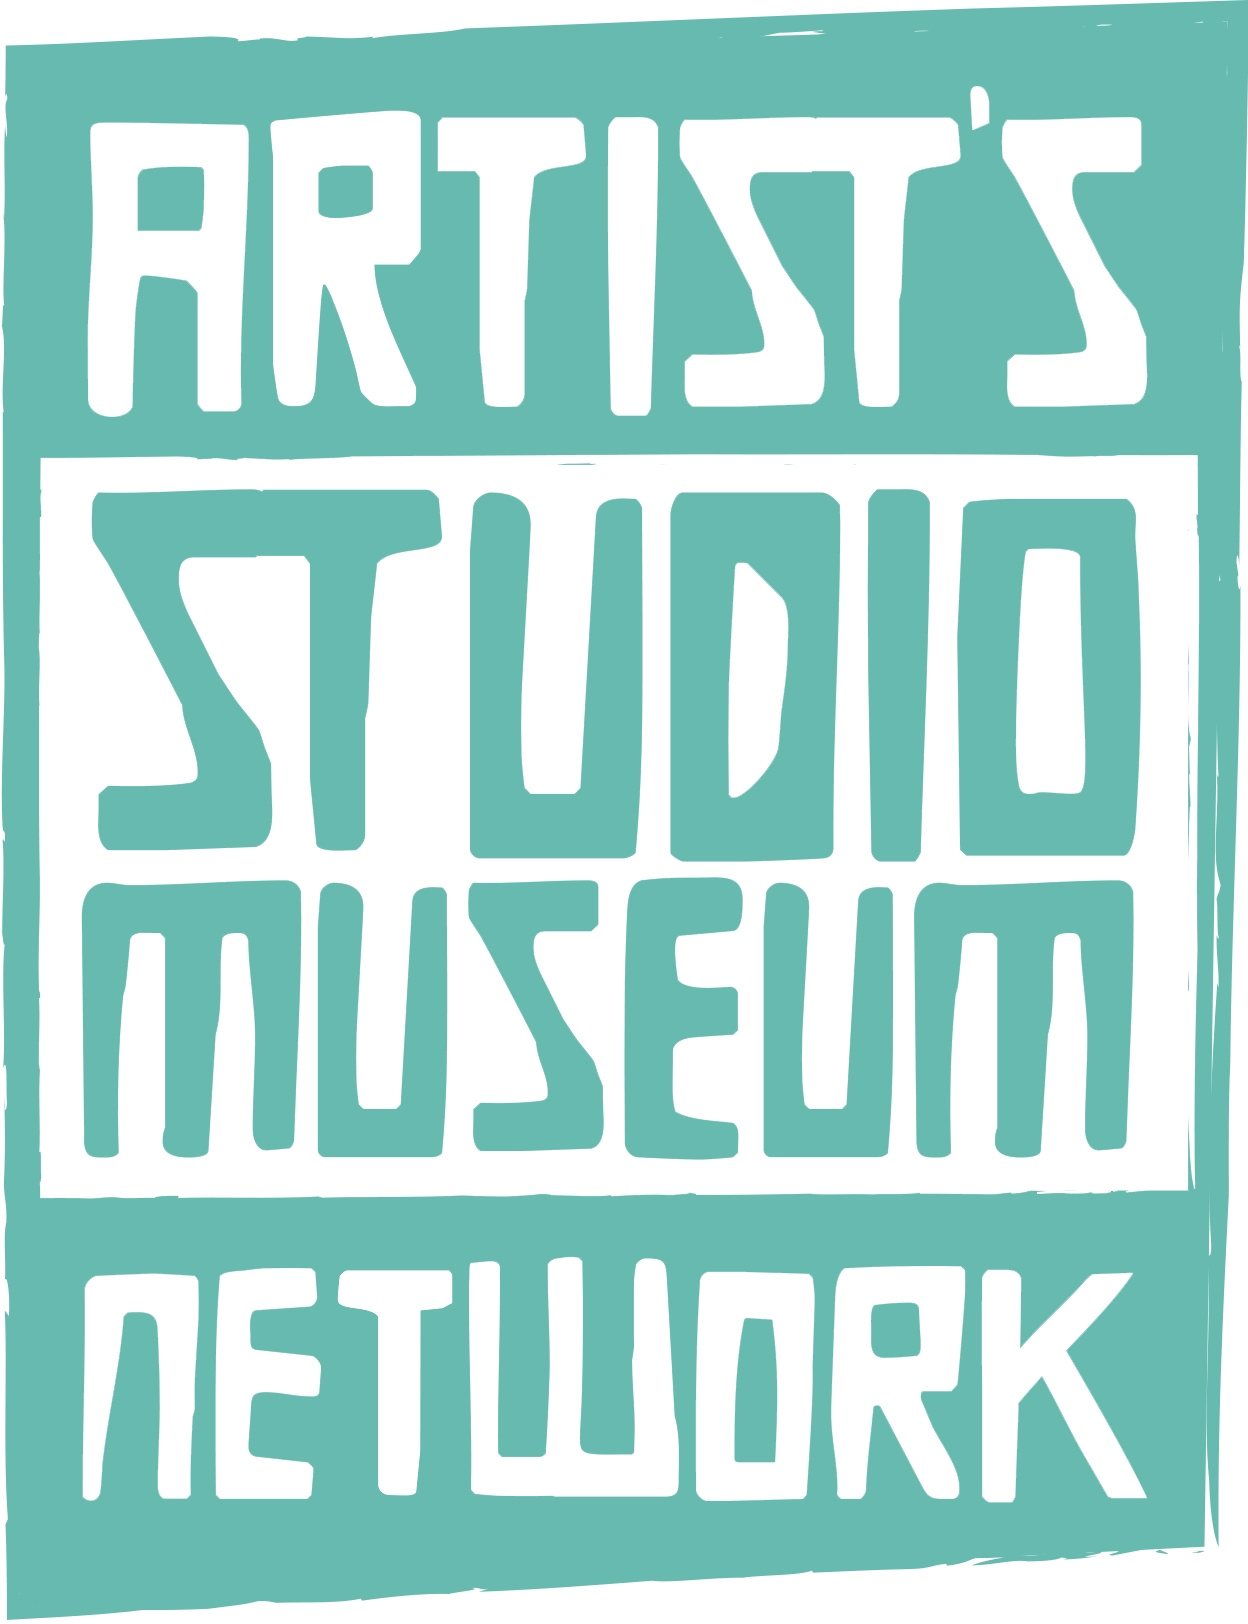 We are proud to be part of the  Artist's Studio Museum Network